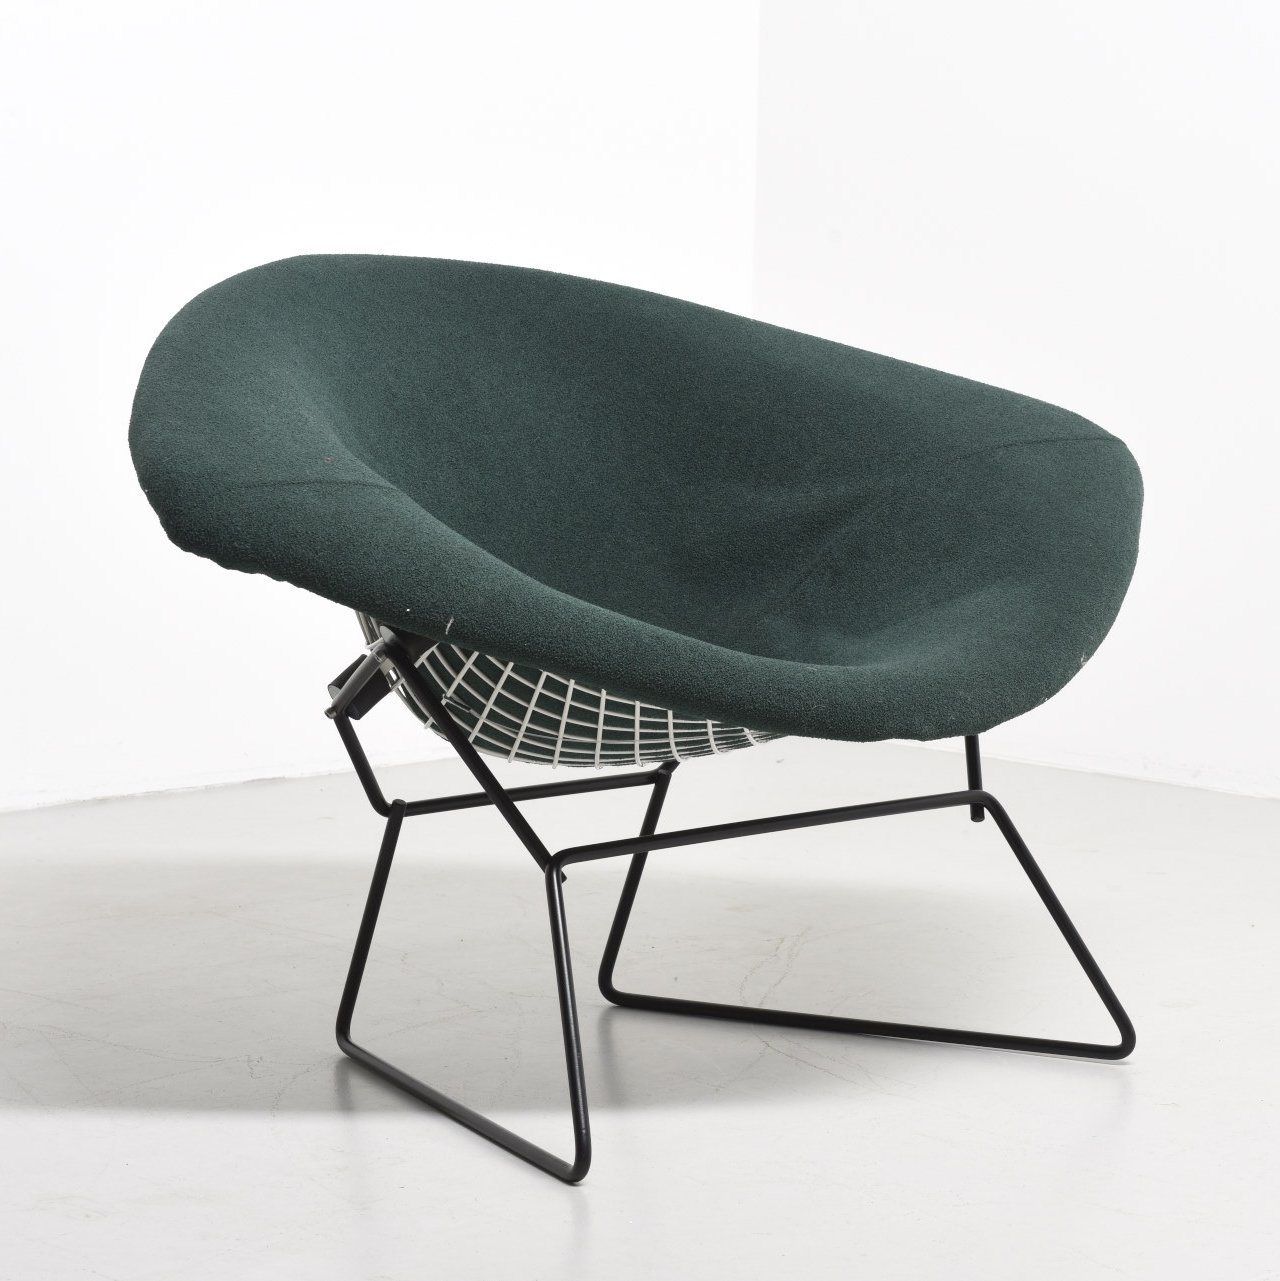 Large Diamond Lounge Chair By Harry Bertoia For Knoll International, 1950s